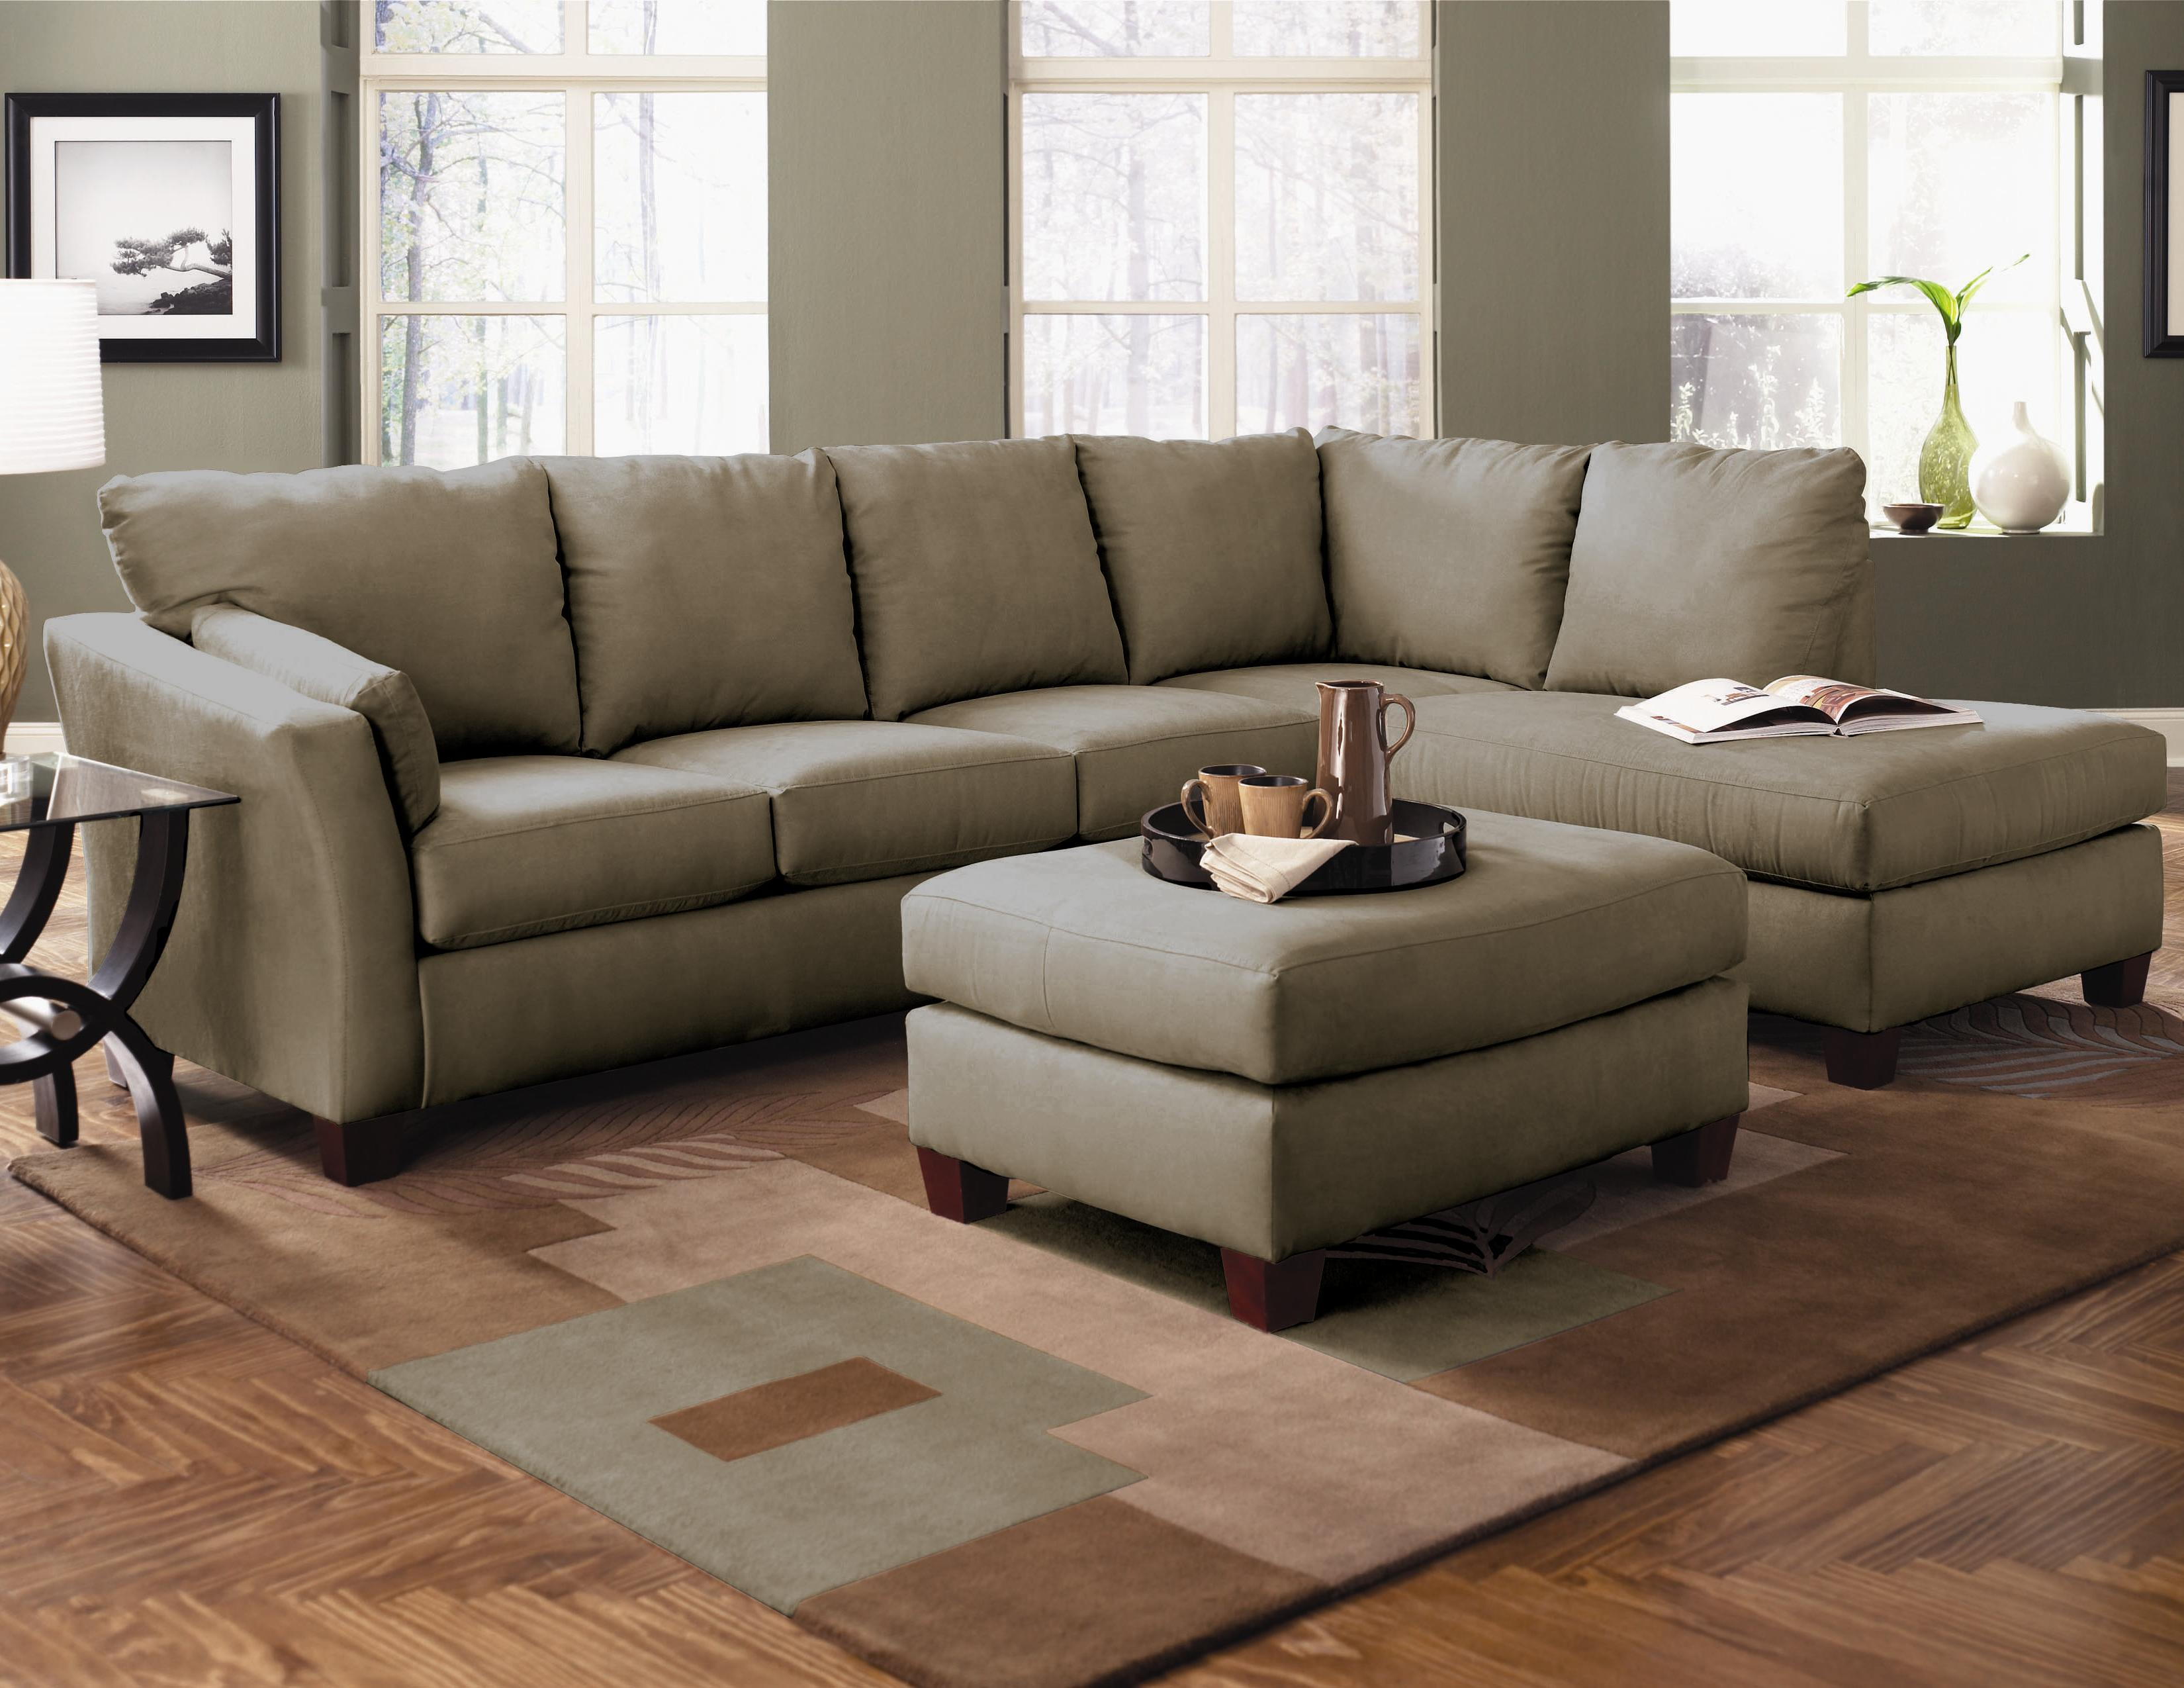 Home comfort sofas zeitraum side comfort home sofas for Comfort house